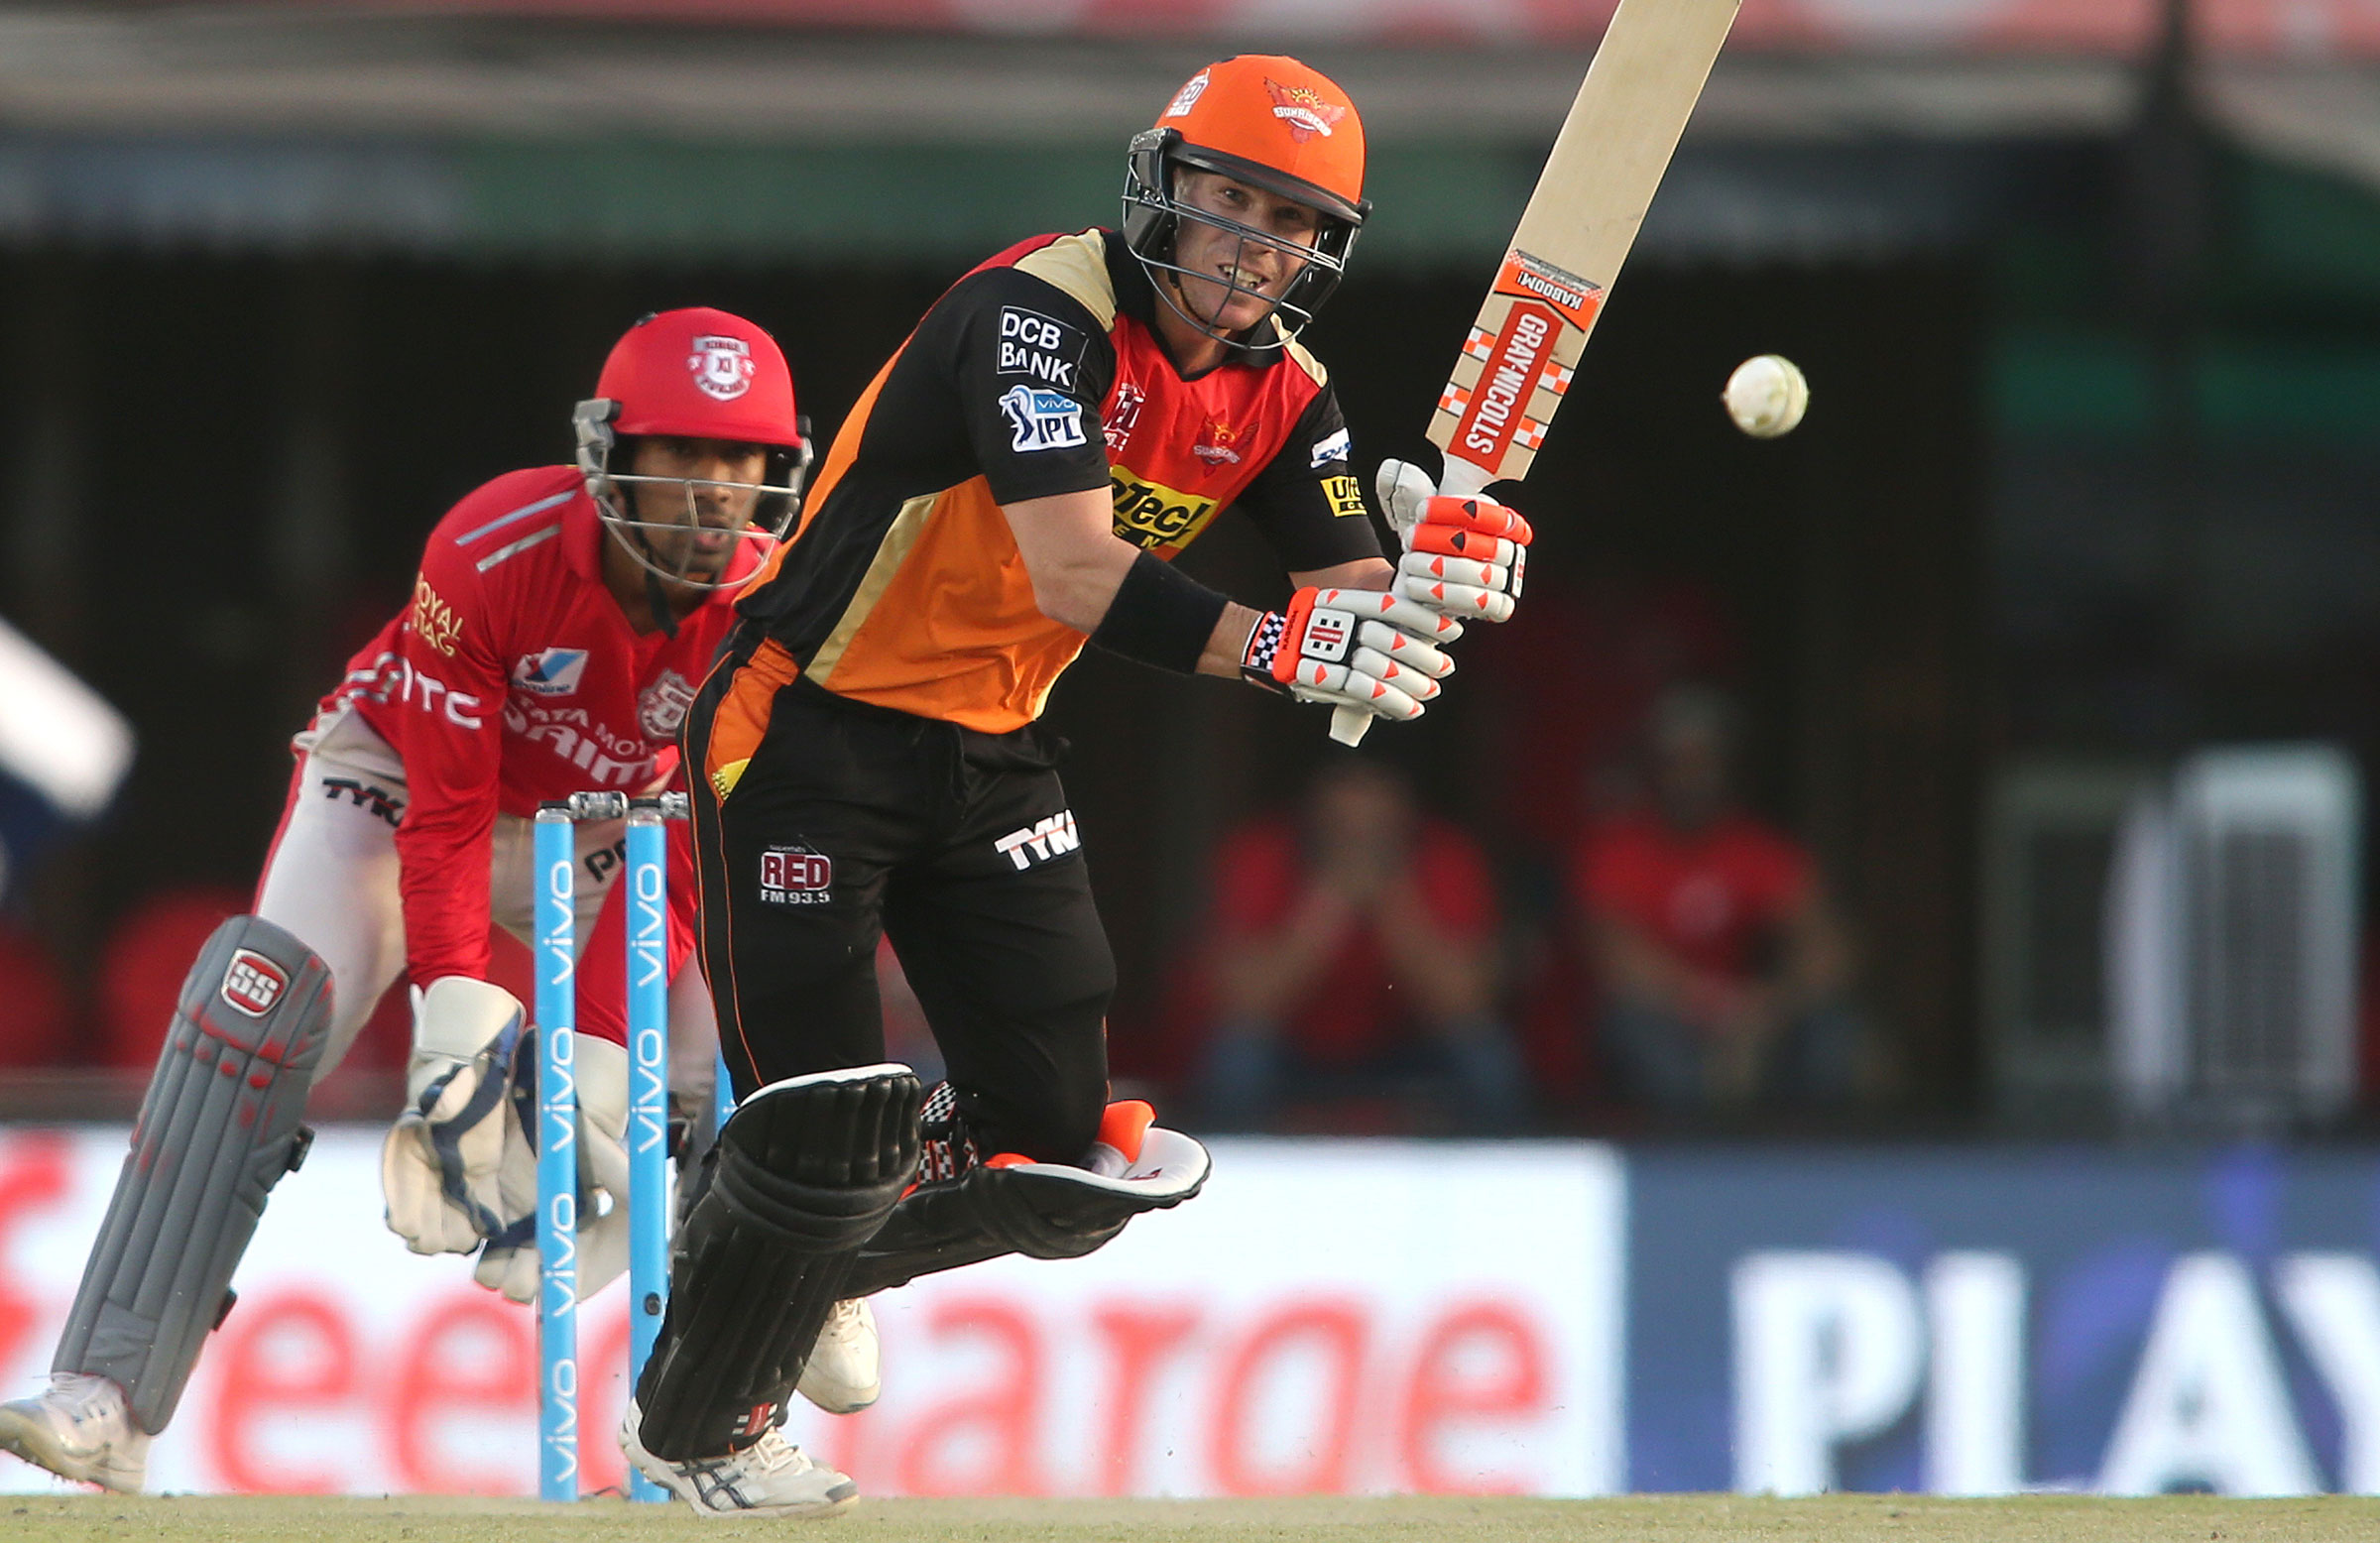 IPL-10: Mumbai aim to deny Sunrisers hattrick of wins